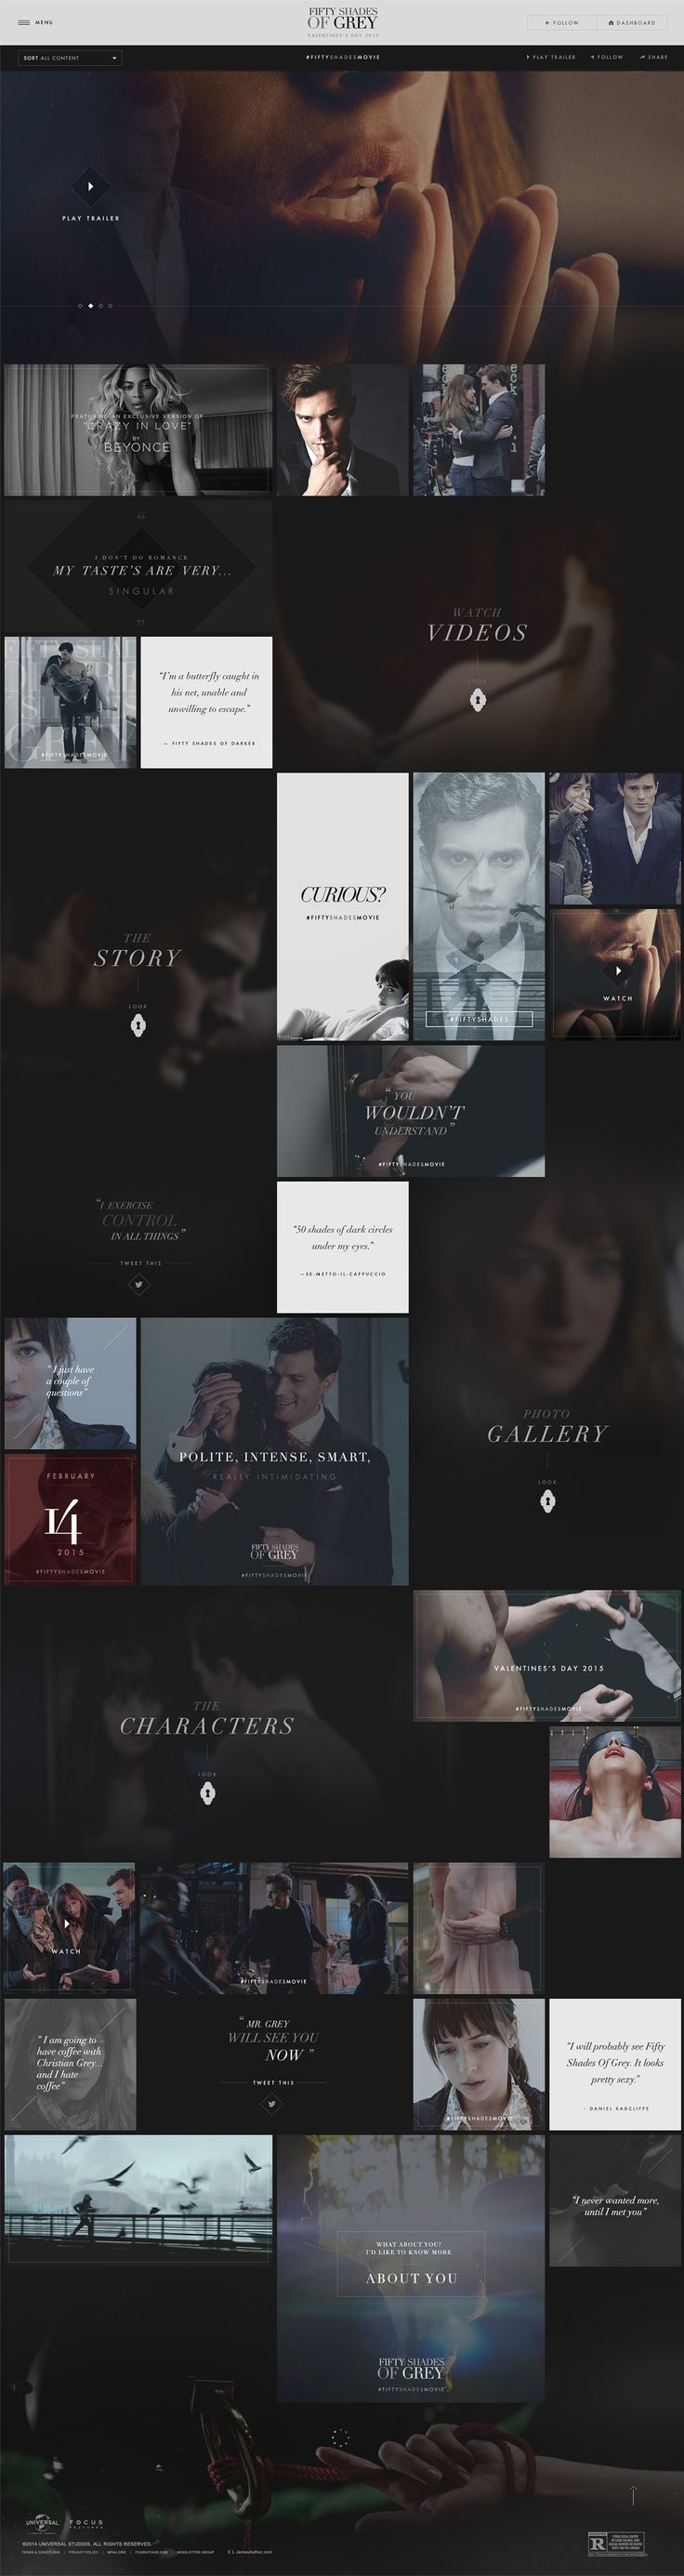 Fifty Shades of Grey - official site on Behance